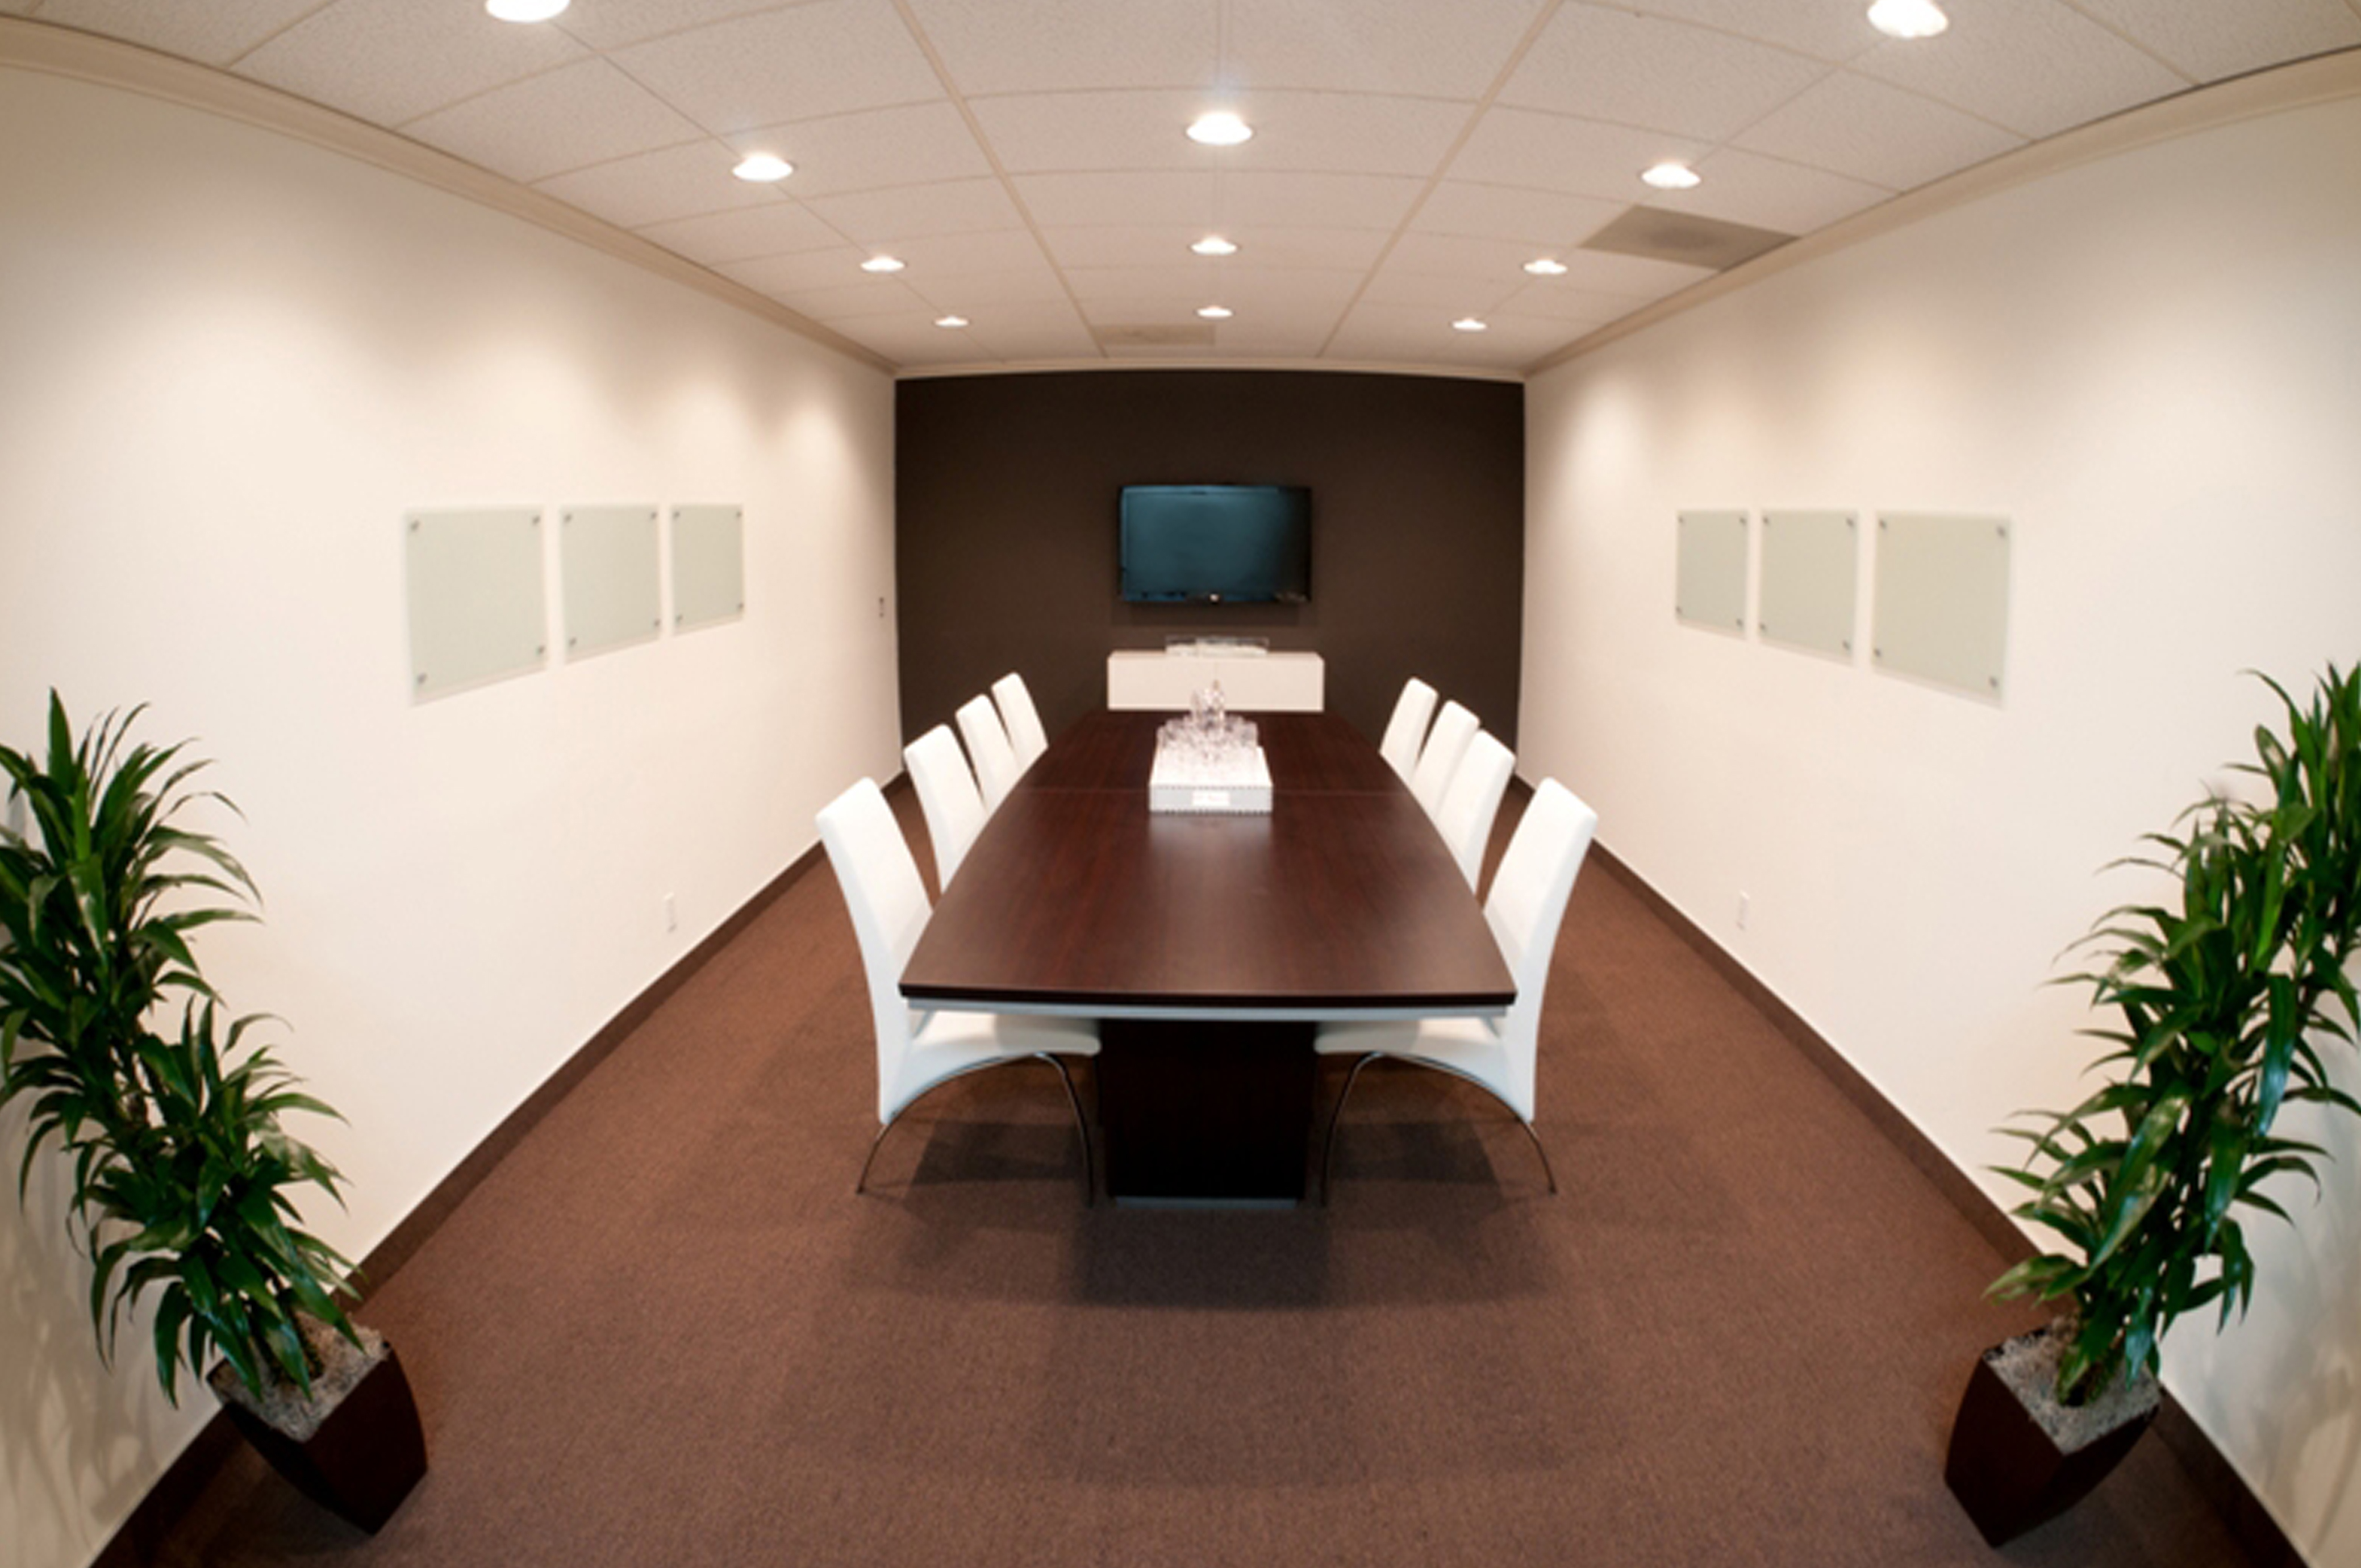 conference room conference room Decoration Designs